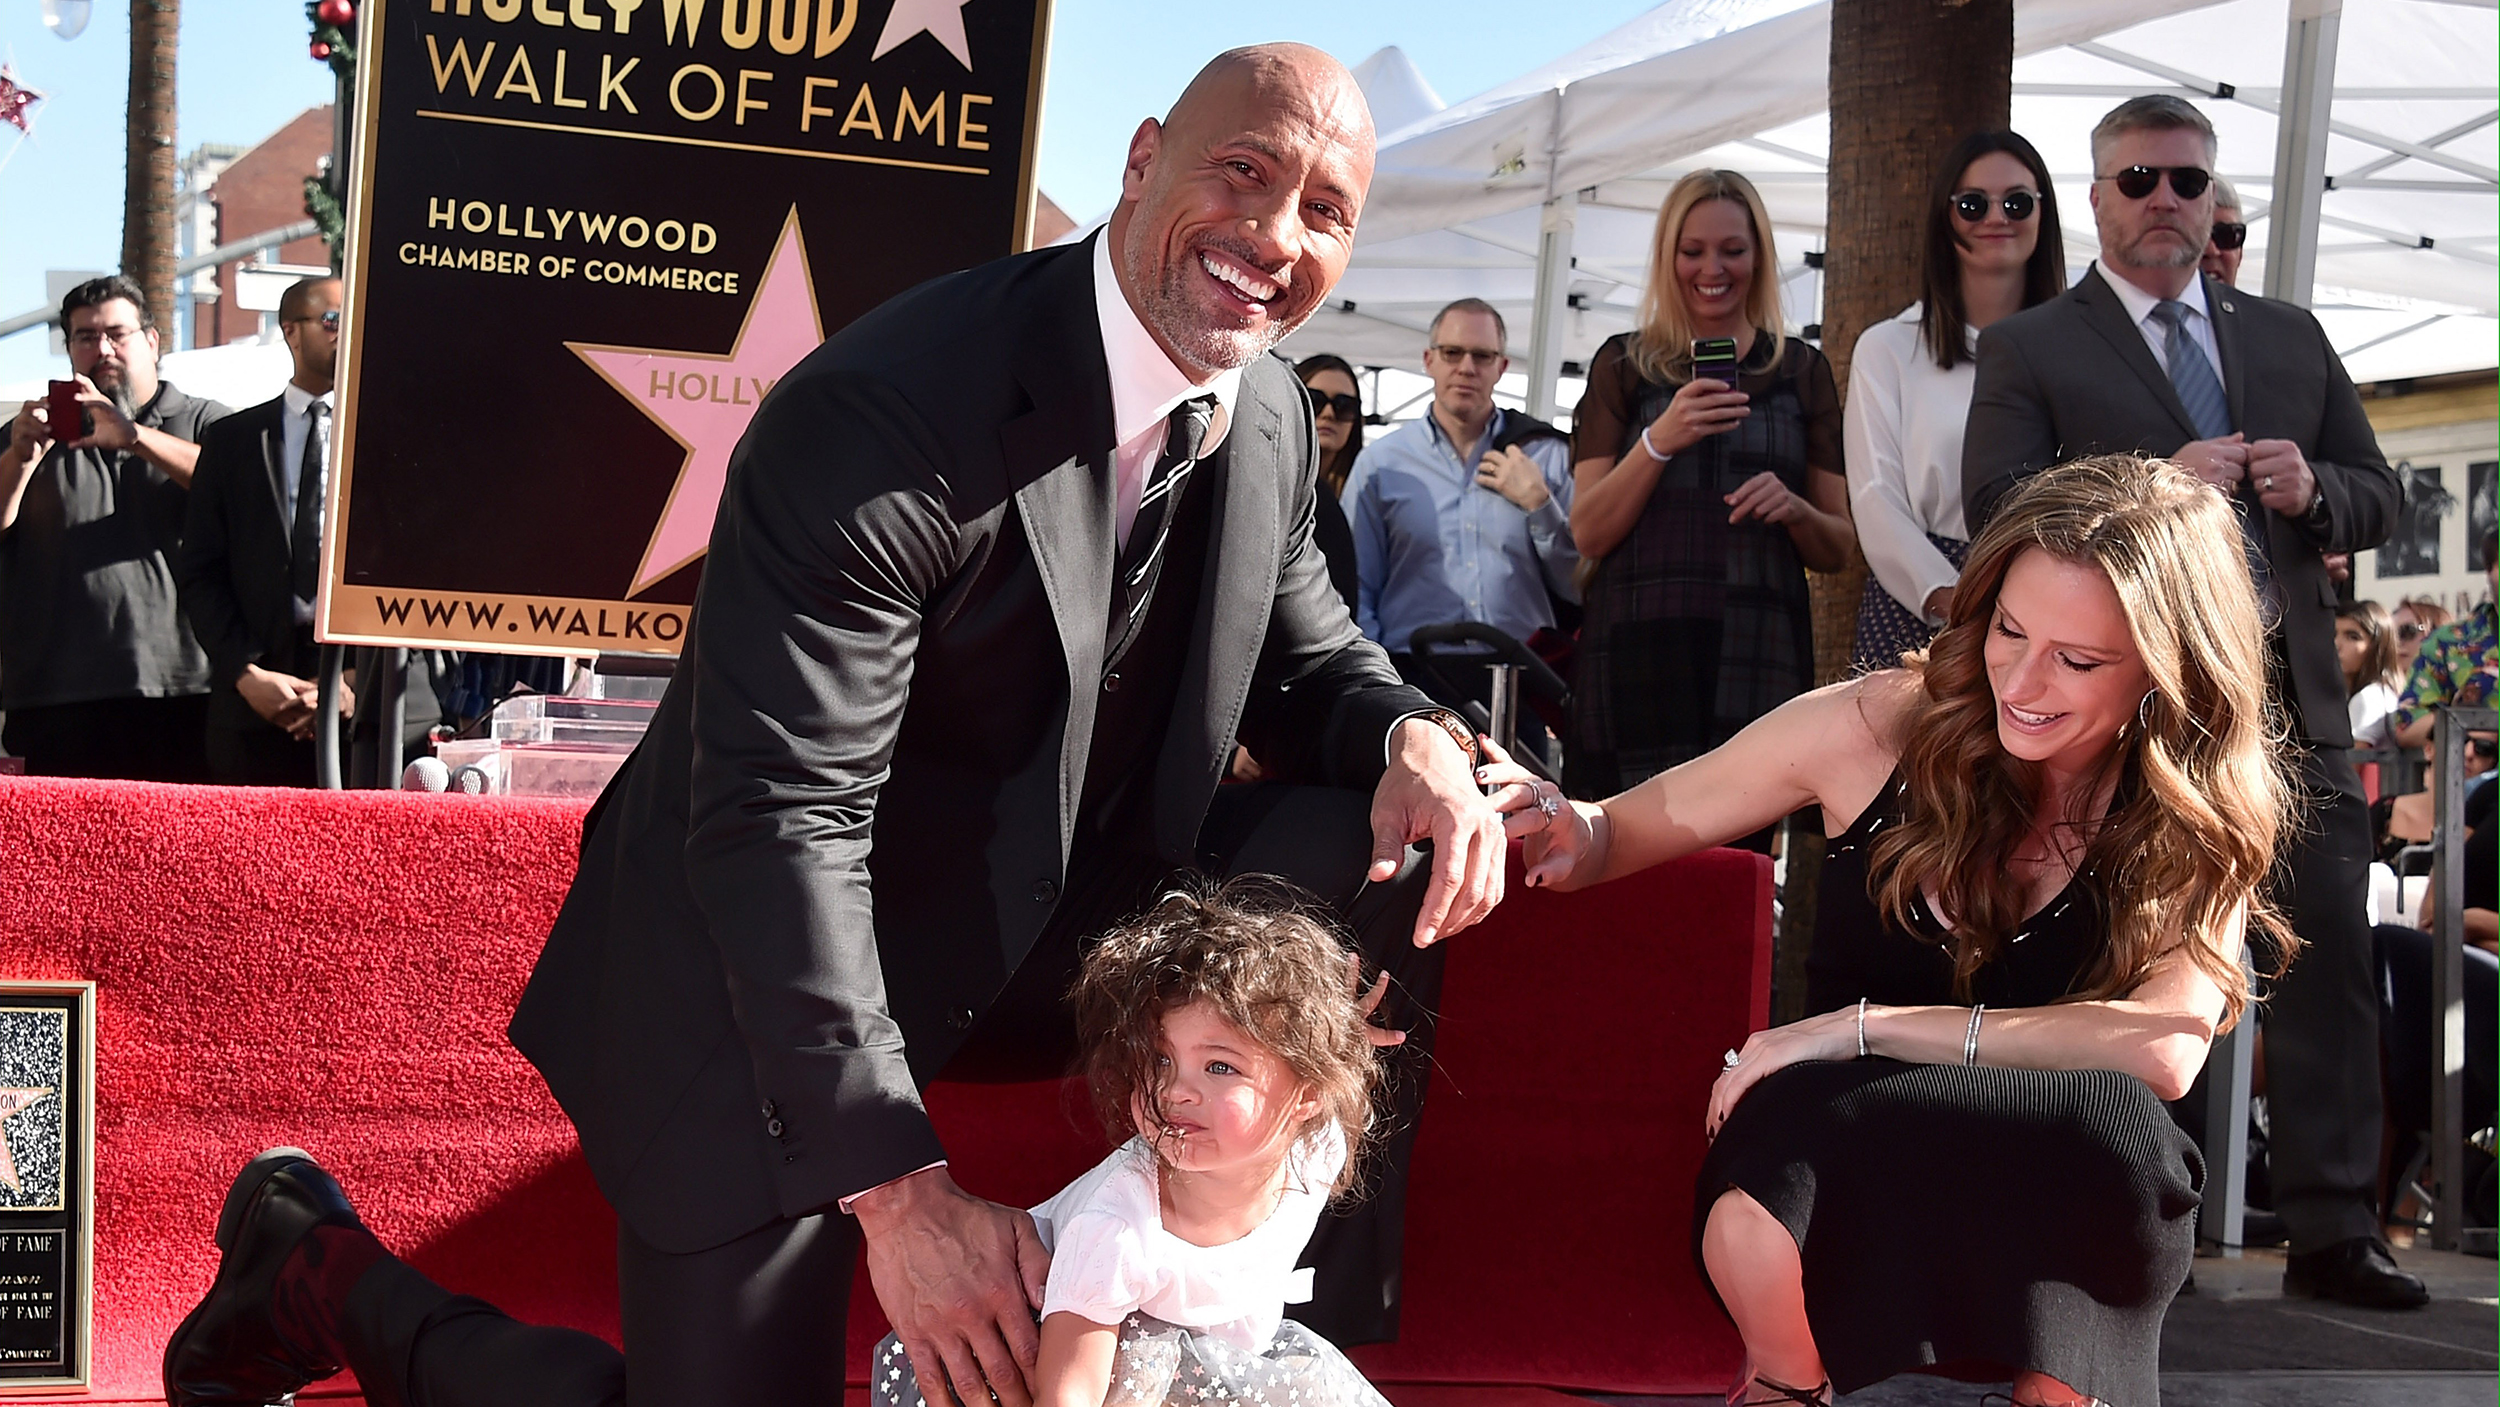 Dwayne Johnson brings adorable daughter to Hollywood Walk of Fame honor